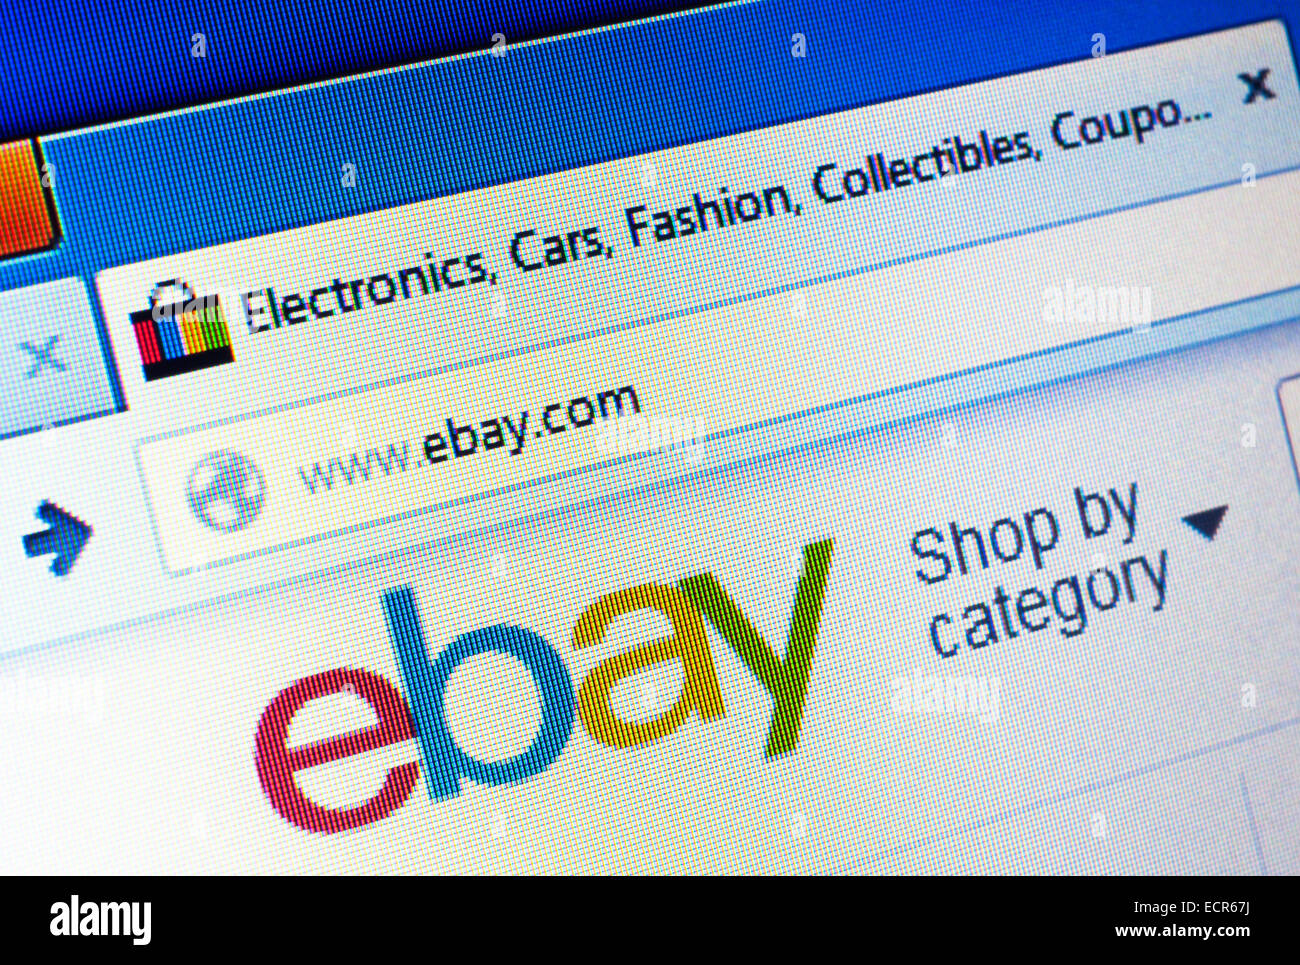 Ebay.com homepage on the computer screen. Editorial use only - Stock Image